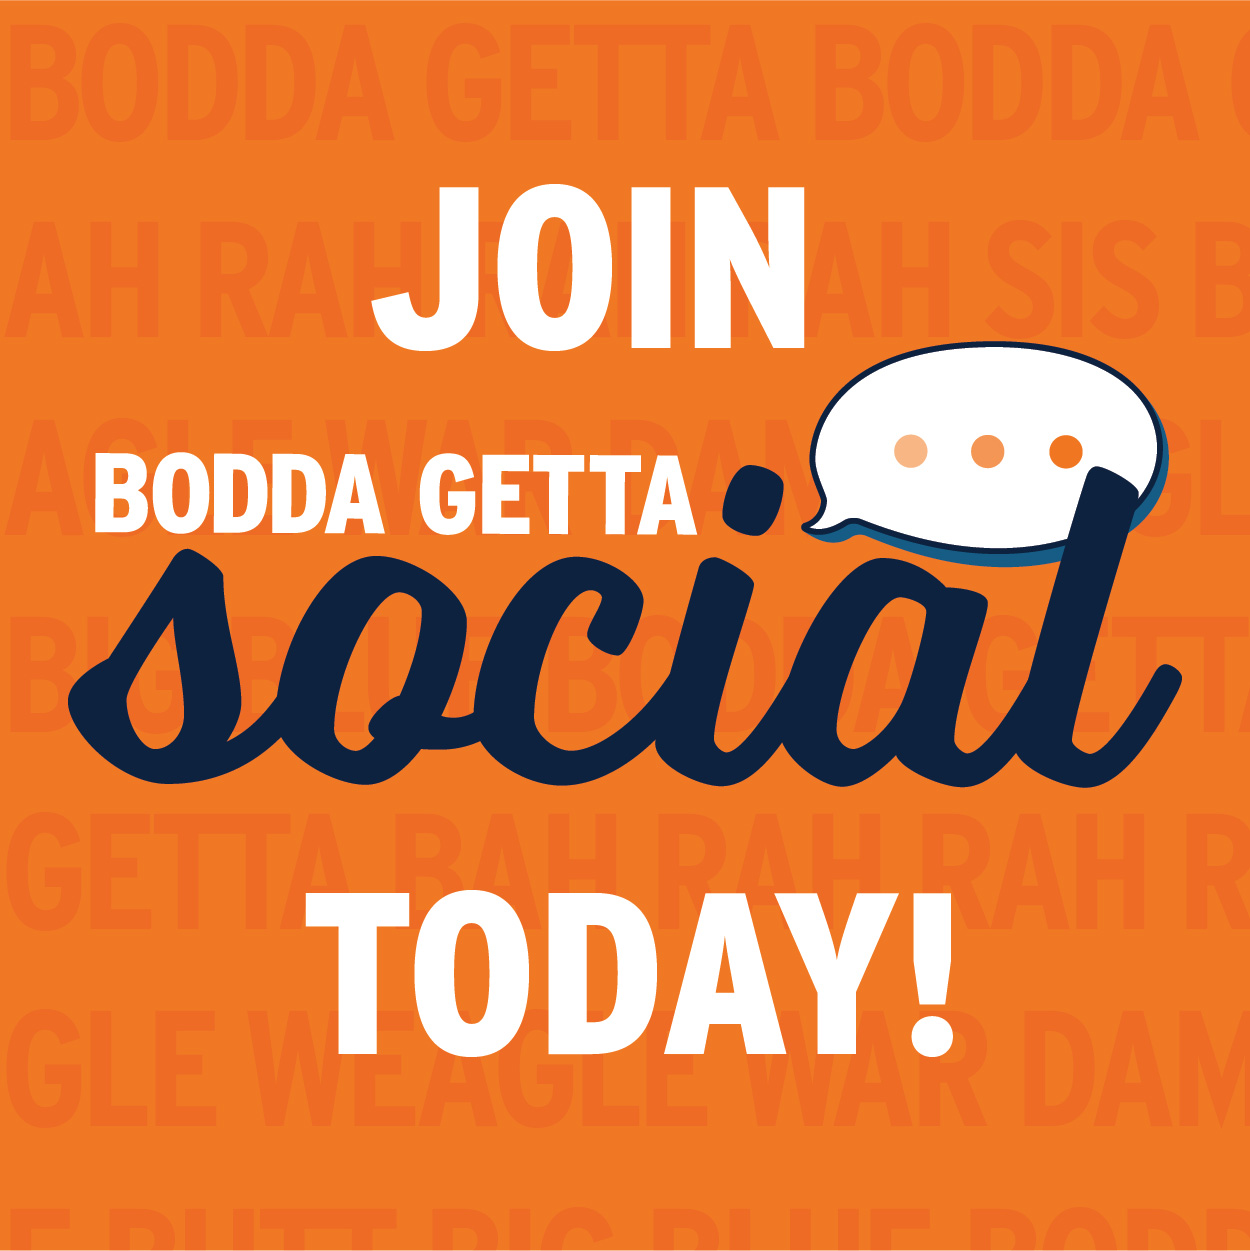 Join Bodda Getta Social Today!